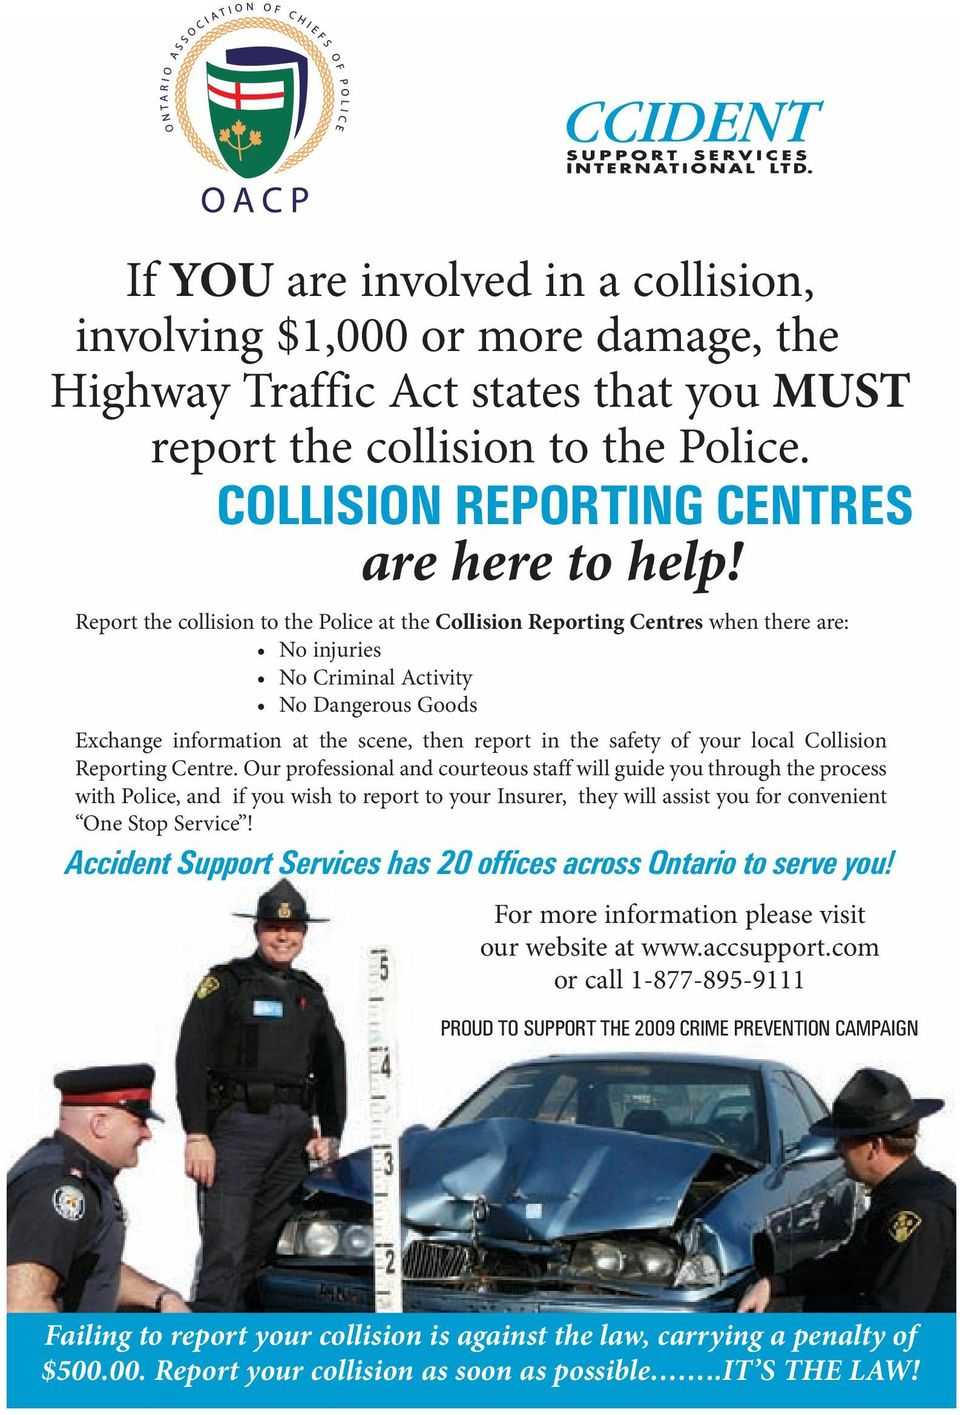 of your local Collision Reporting Centre.